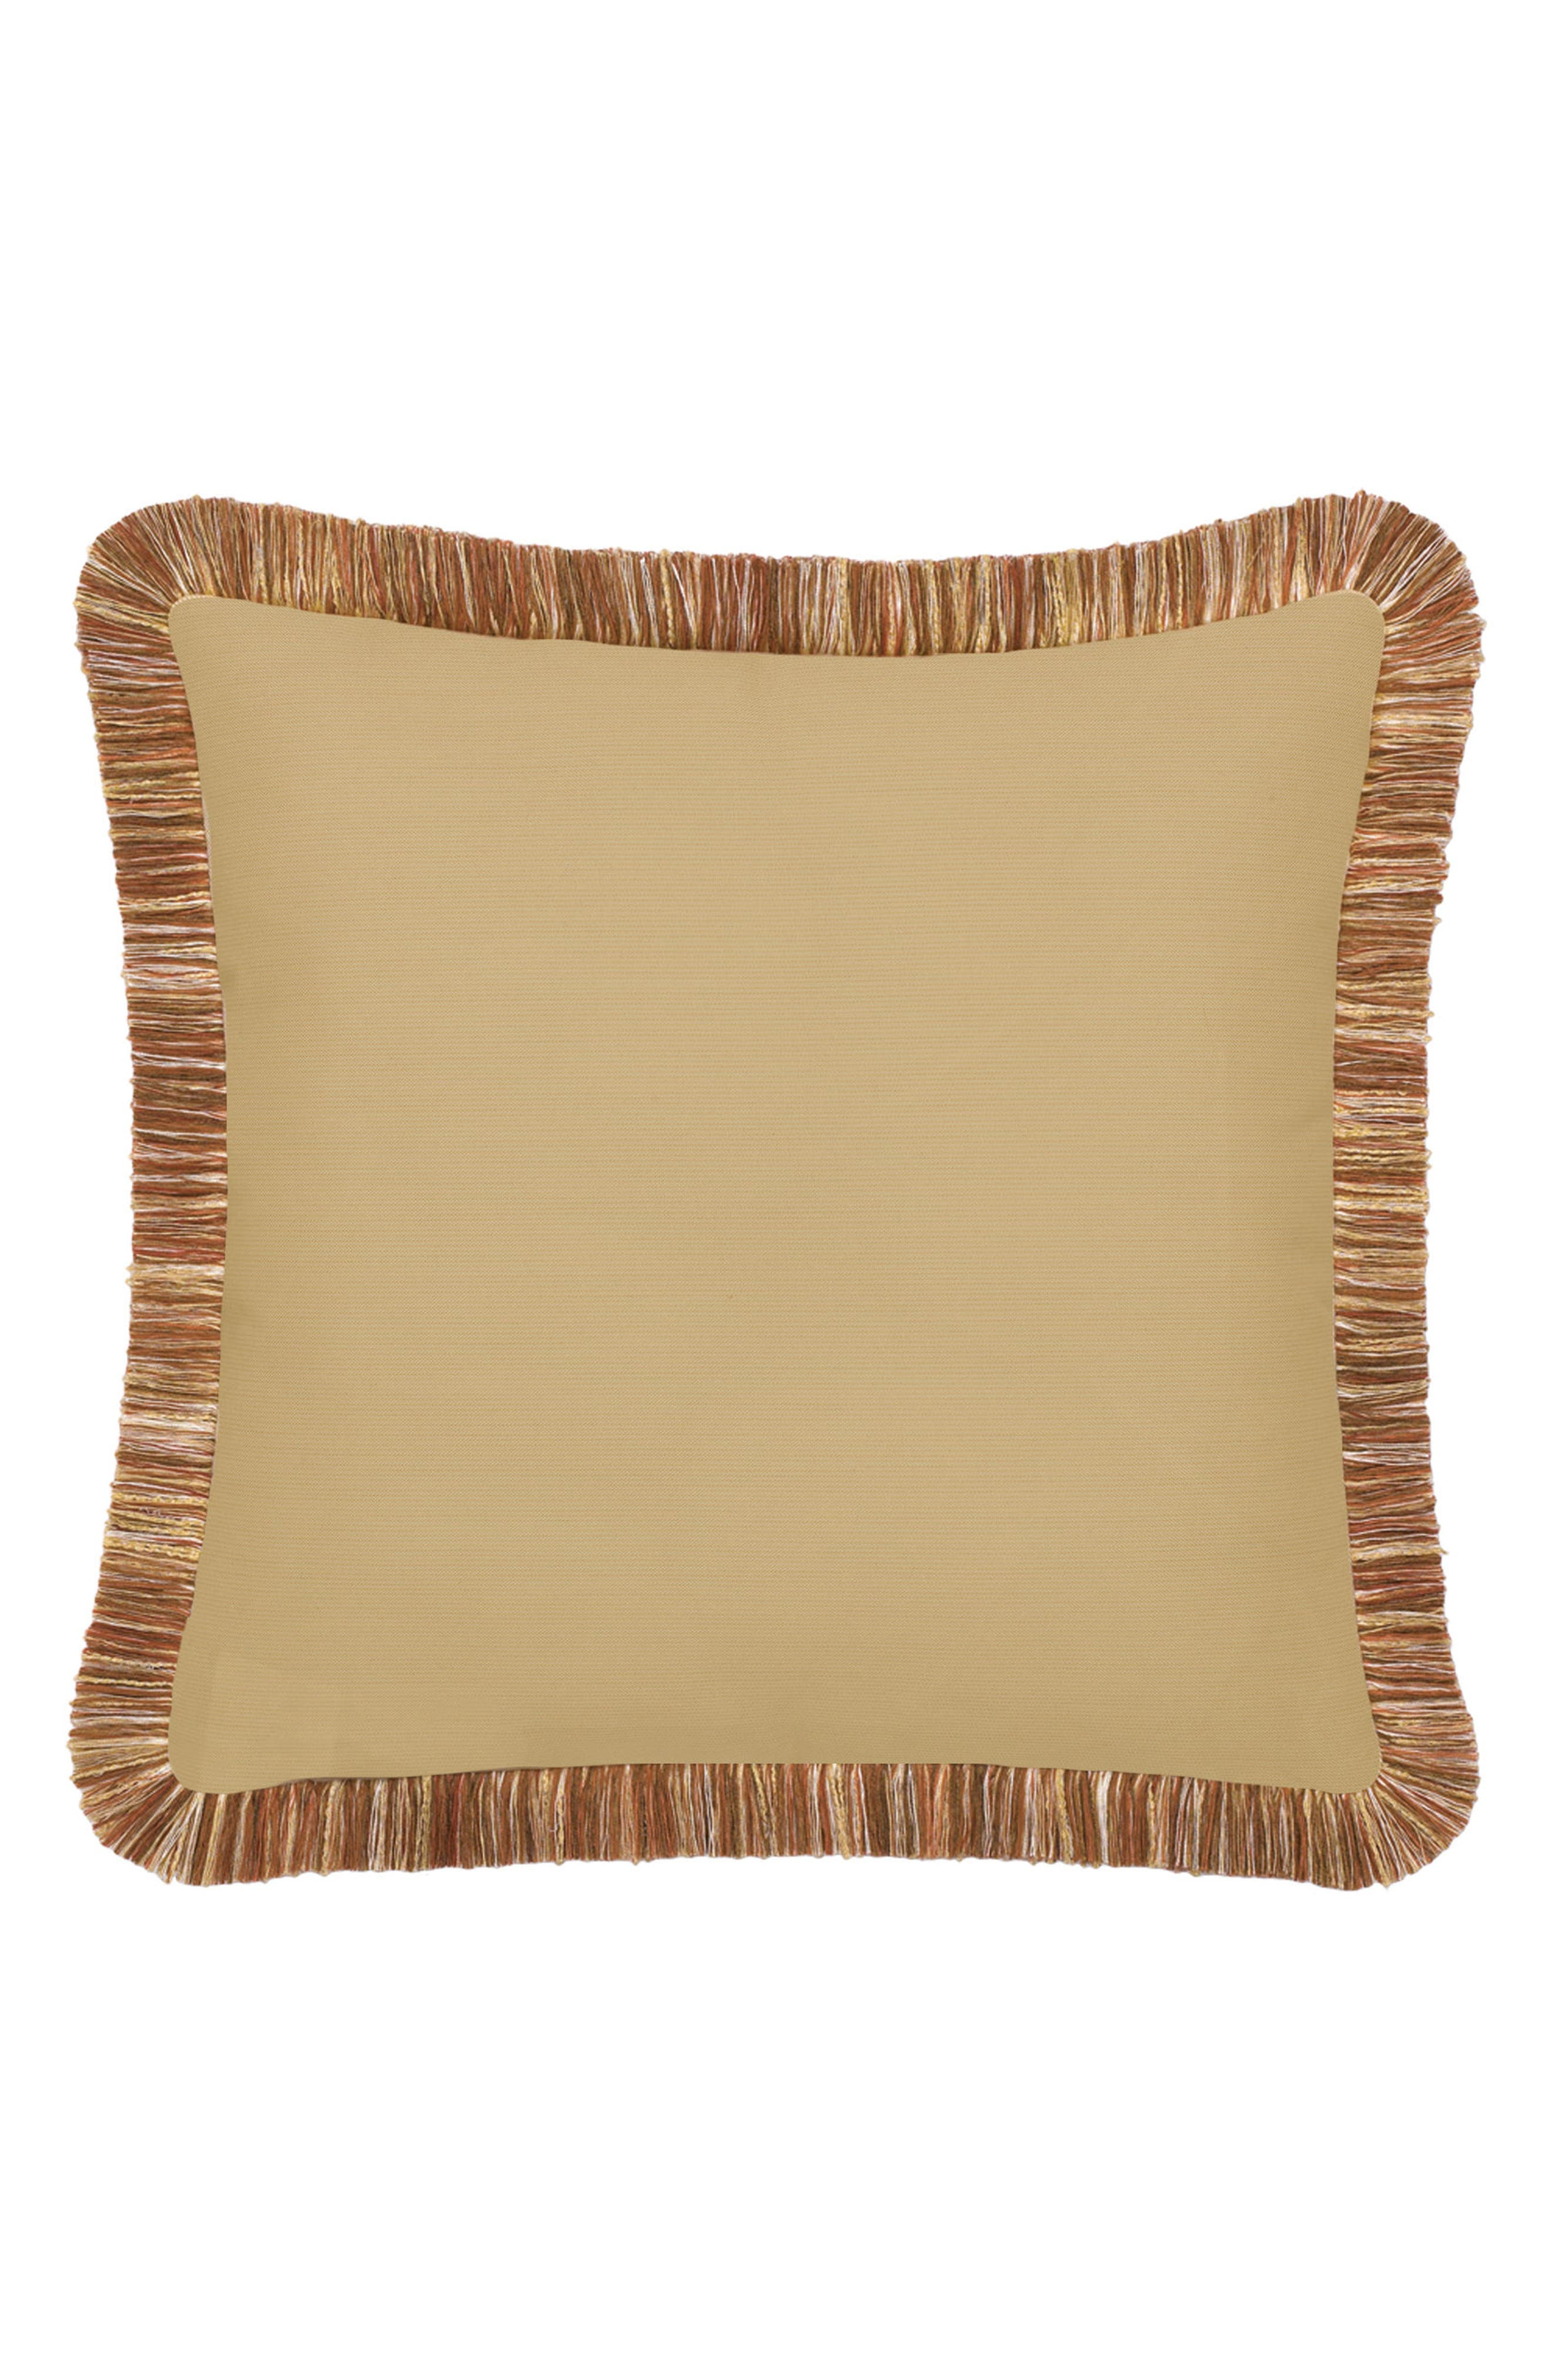 Dragonfly Indoor/Outdoor Accent Pillow,                             Alternate thumbnail 2, color,                             200